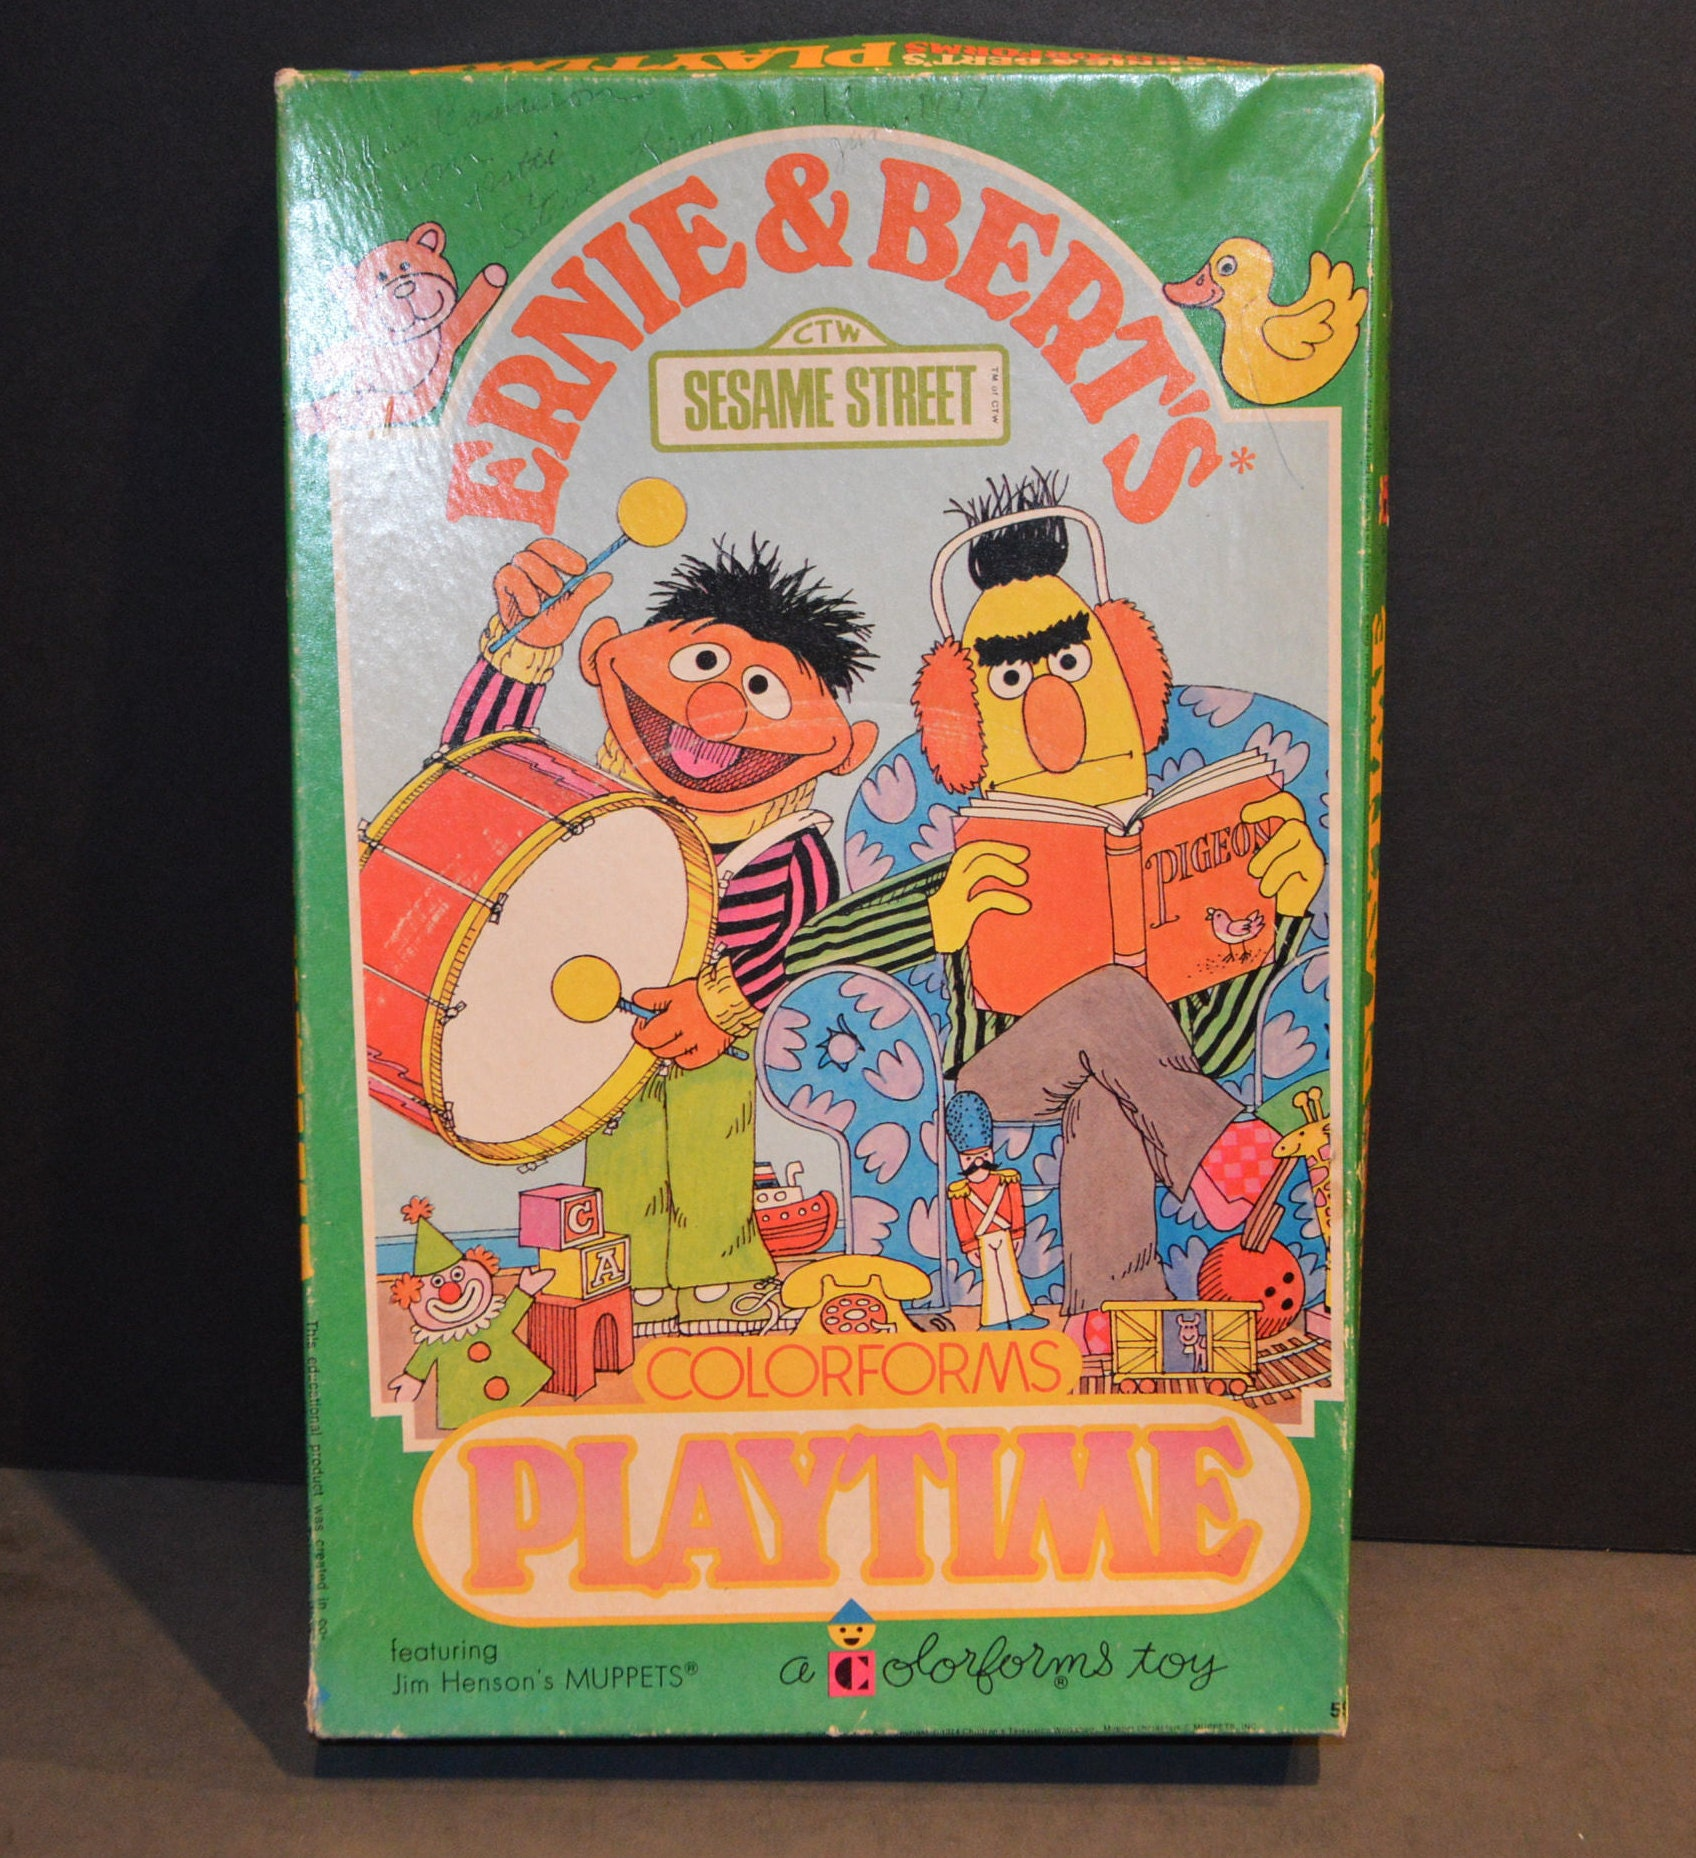 1970 S Sesame Street Ernie And Bert S Playtime Colorforms